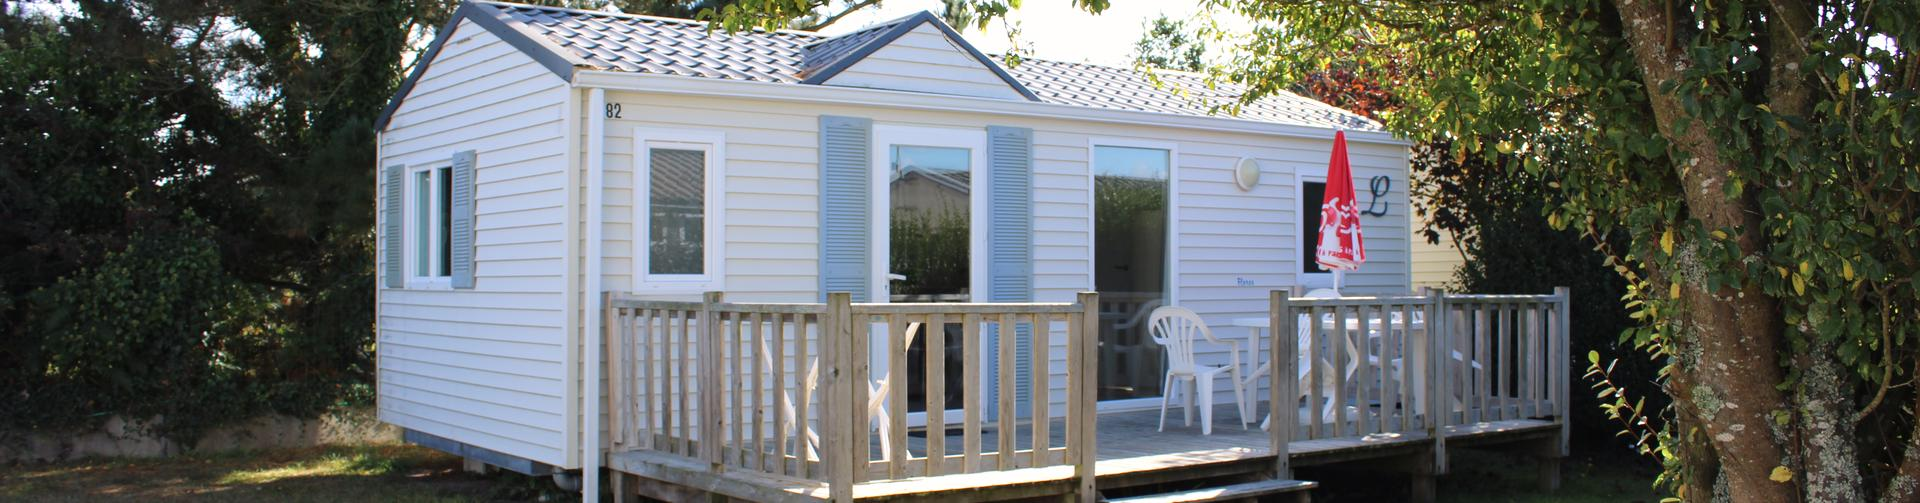 location-finistere-mobilhome-flores-4p